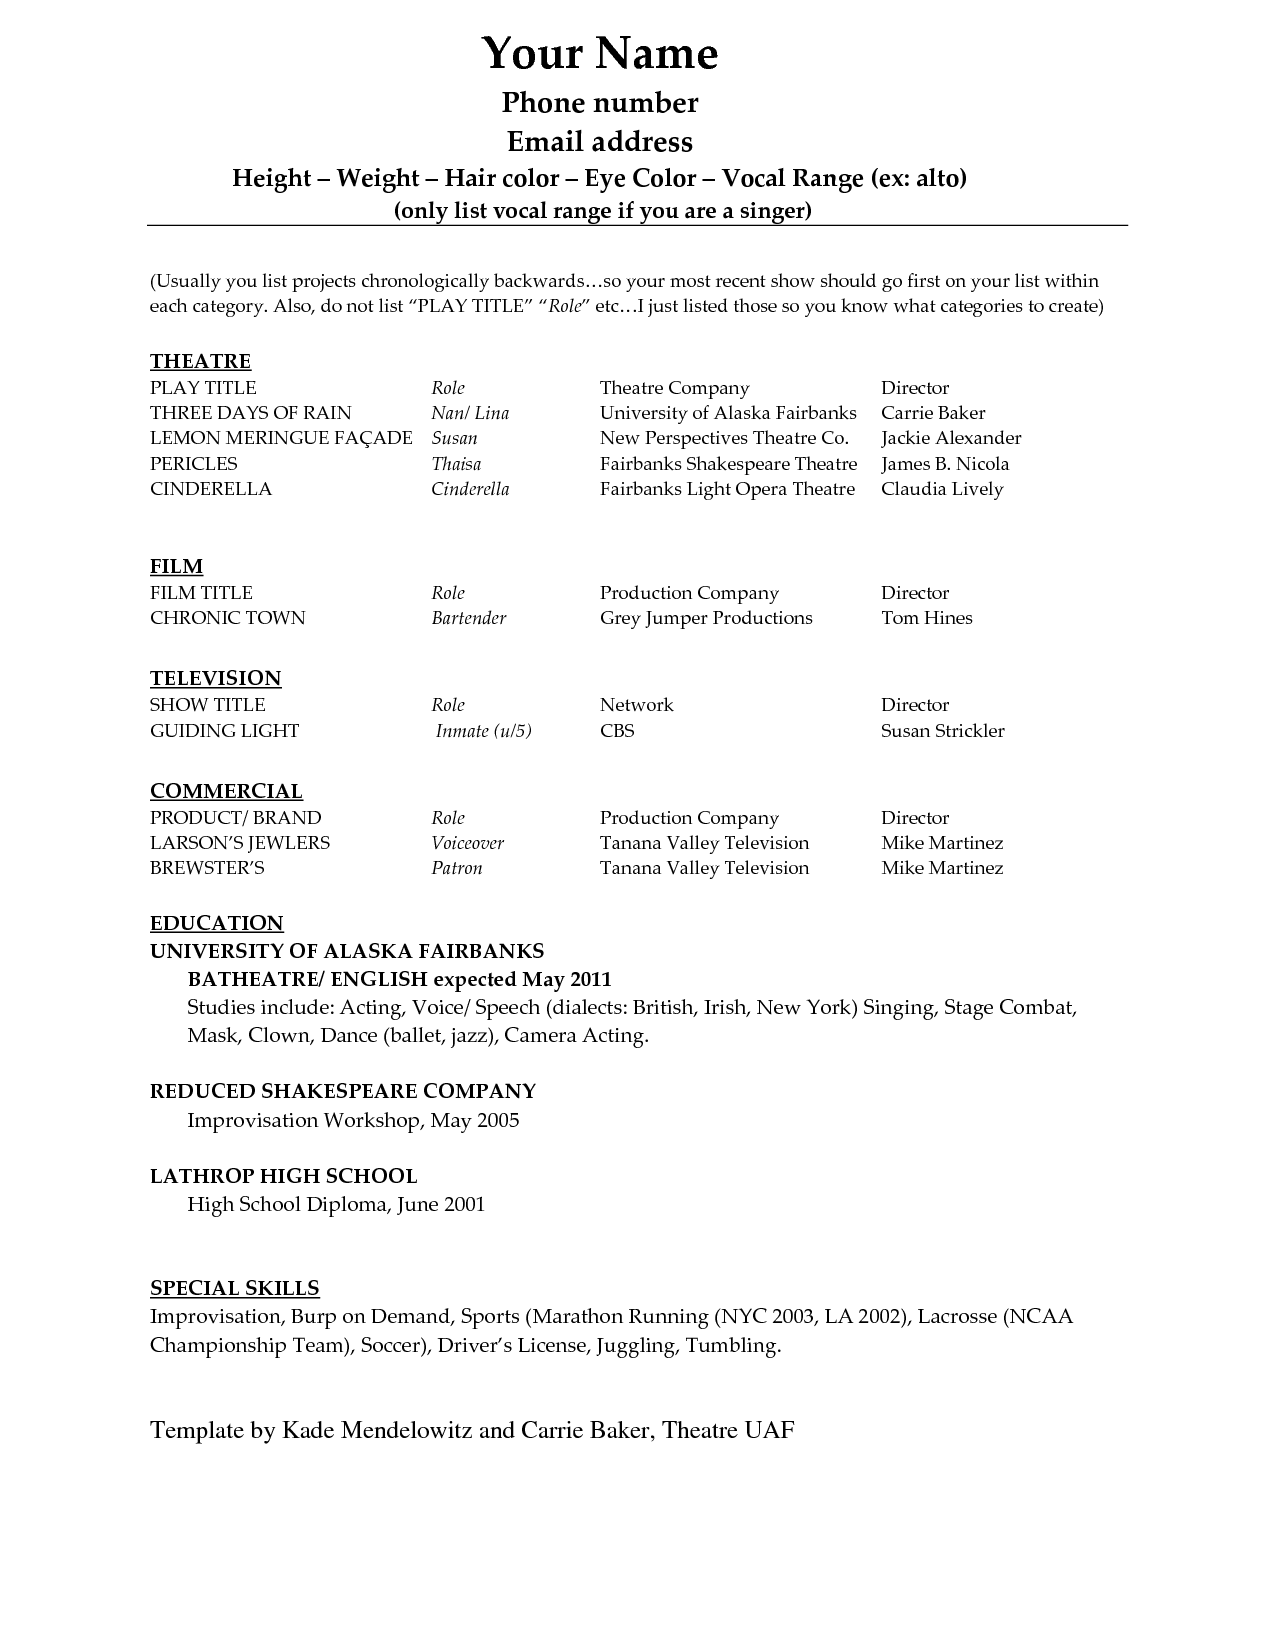 Cover Letter Template 8ws Templates Forms Job Search